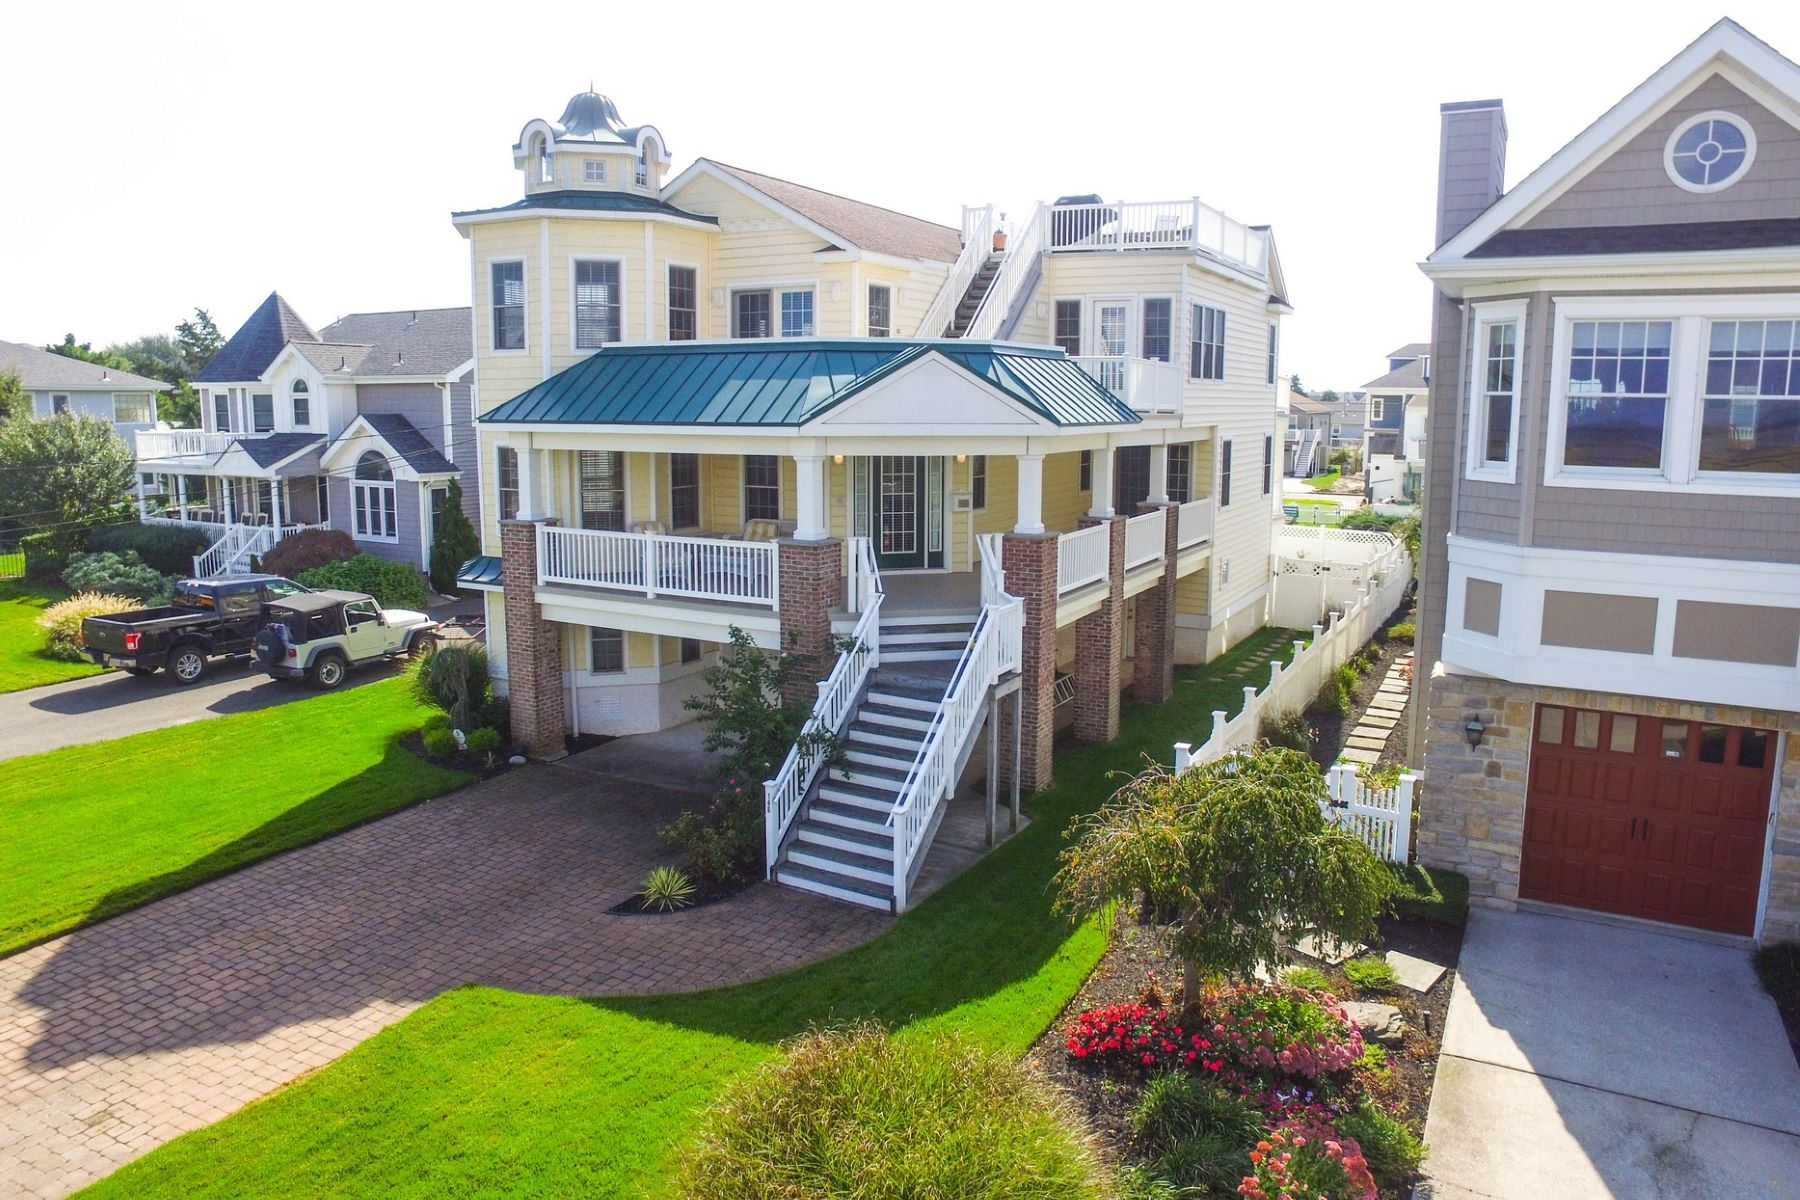 Single Family Home for Sale at Incredible Single Family Home 146 Roosevelt Blvd., Ocean City, New Jersey 08226 United States